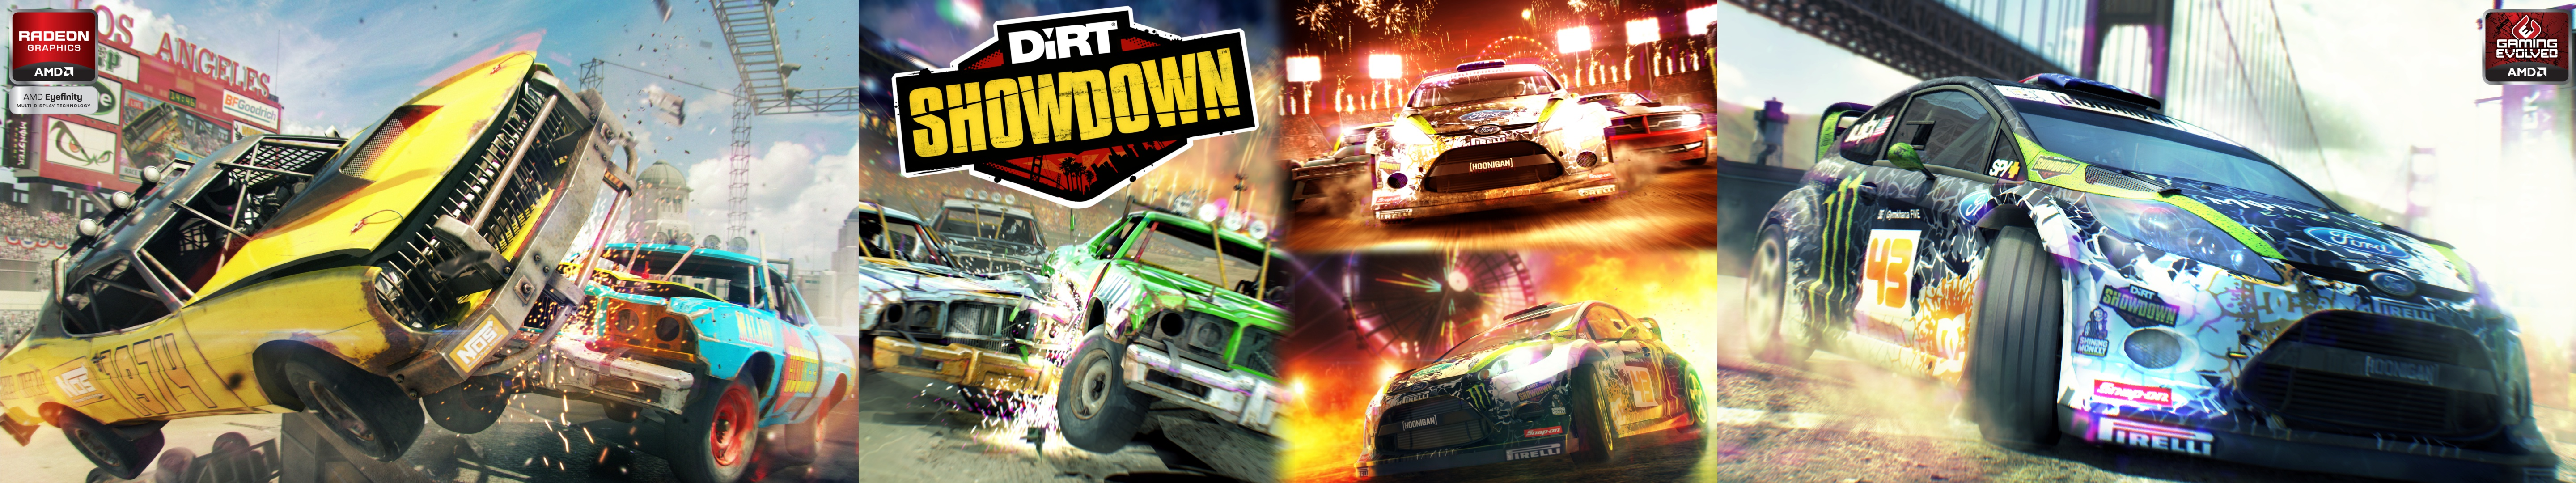 Dirt Showdown Triple Monitor Wallpapers Multi Monitor Gaming 5760x1080